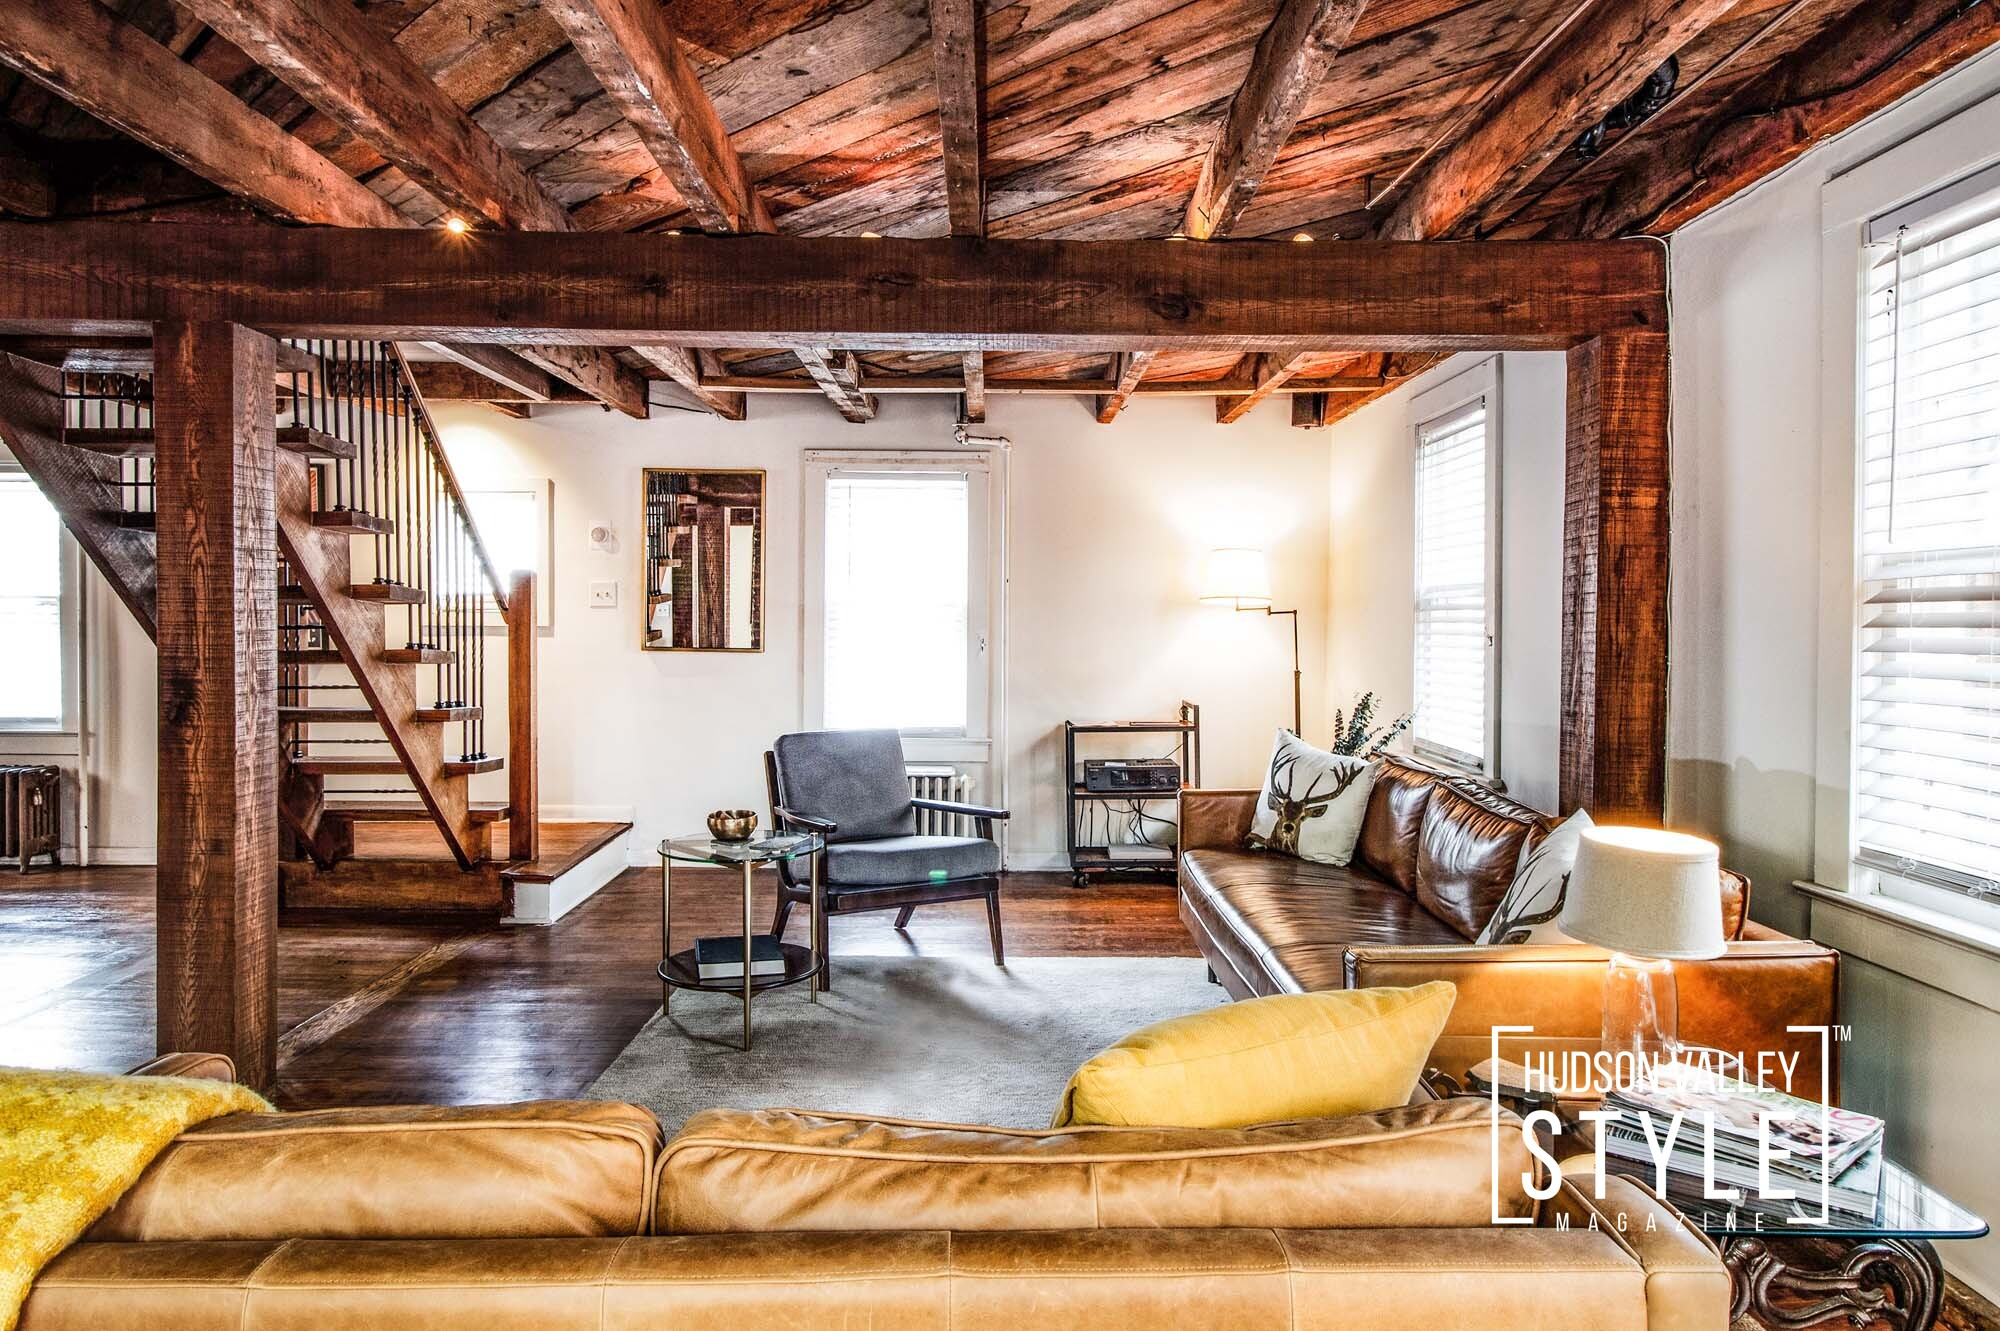 Woodstock, NY Airbnb Listing Photography by Duncan Avenue Studios – Hudson Valley Real Estate Photography